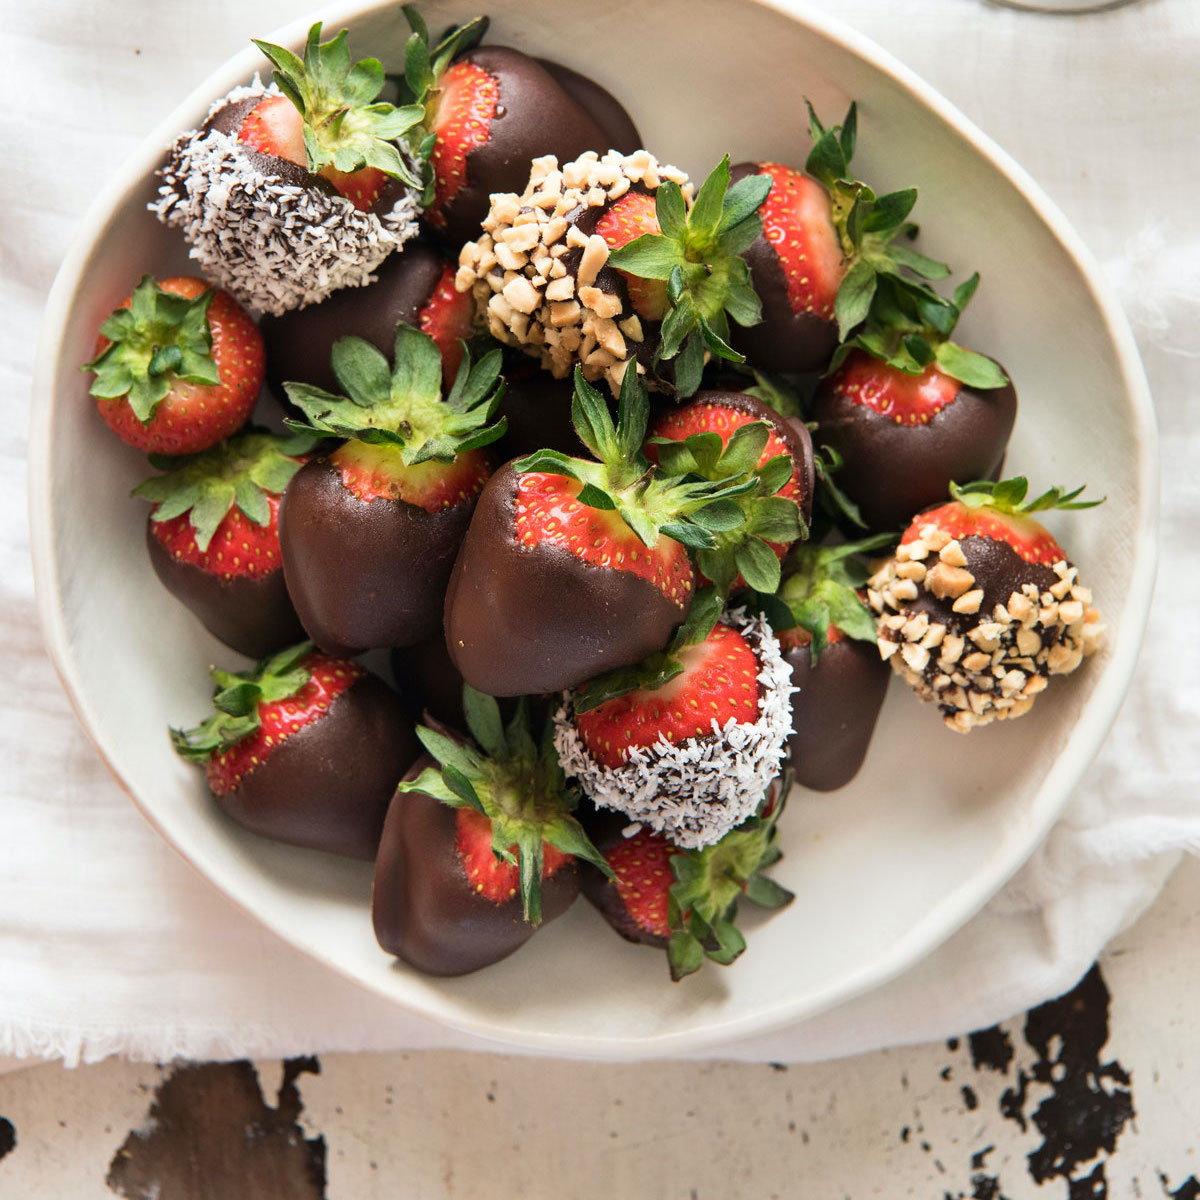 Chocolate Covered Strawberries 3 Ingredient Dessert Recipetin Eats